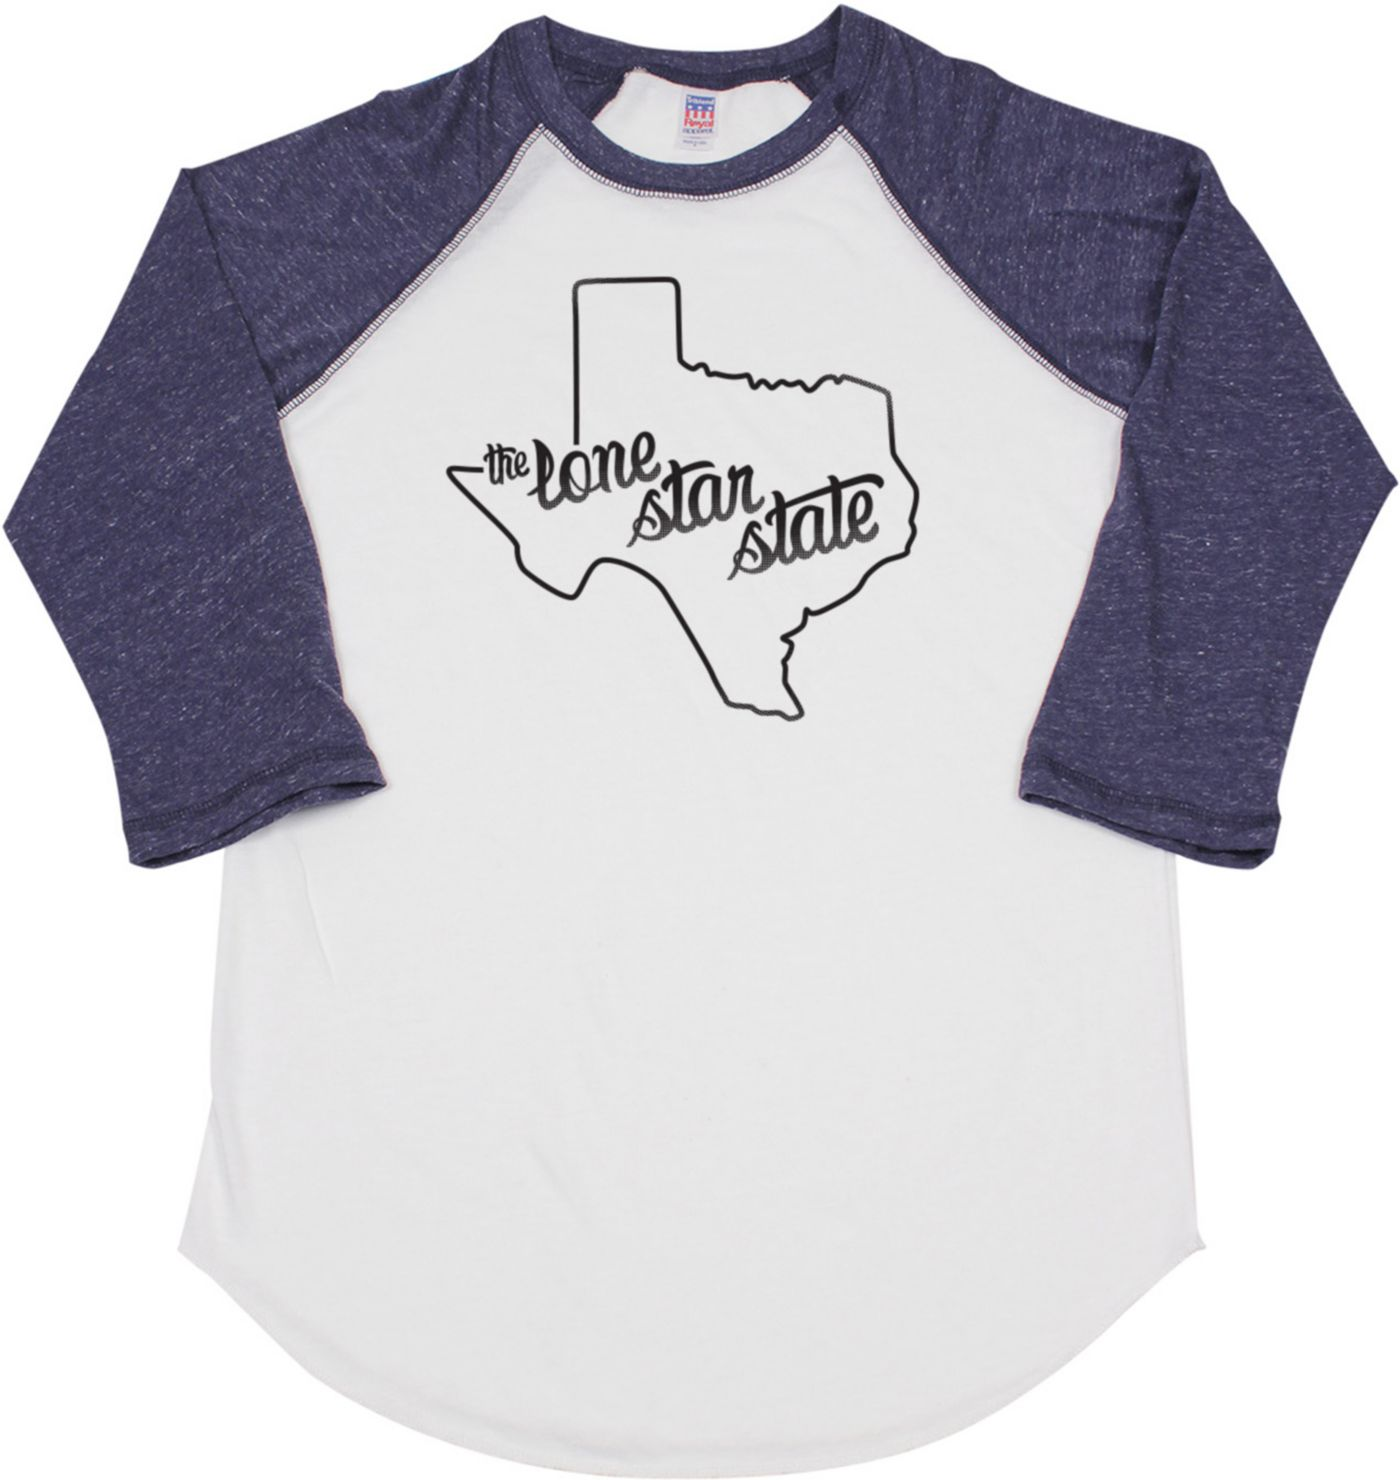 Home State Apparel Women's Texas Freehand Three Quarter Length Sleeve Raglan T-Shirt